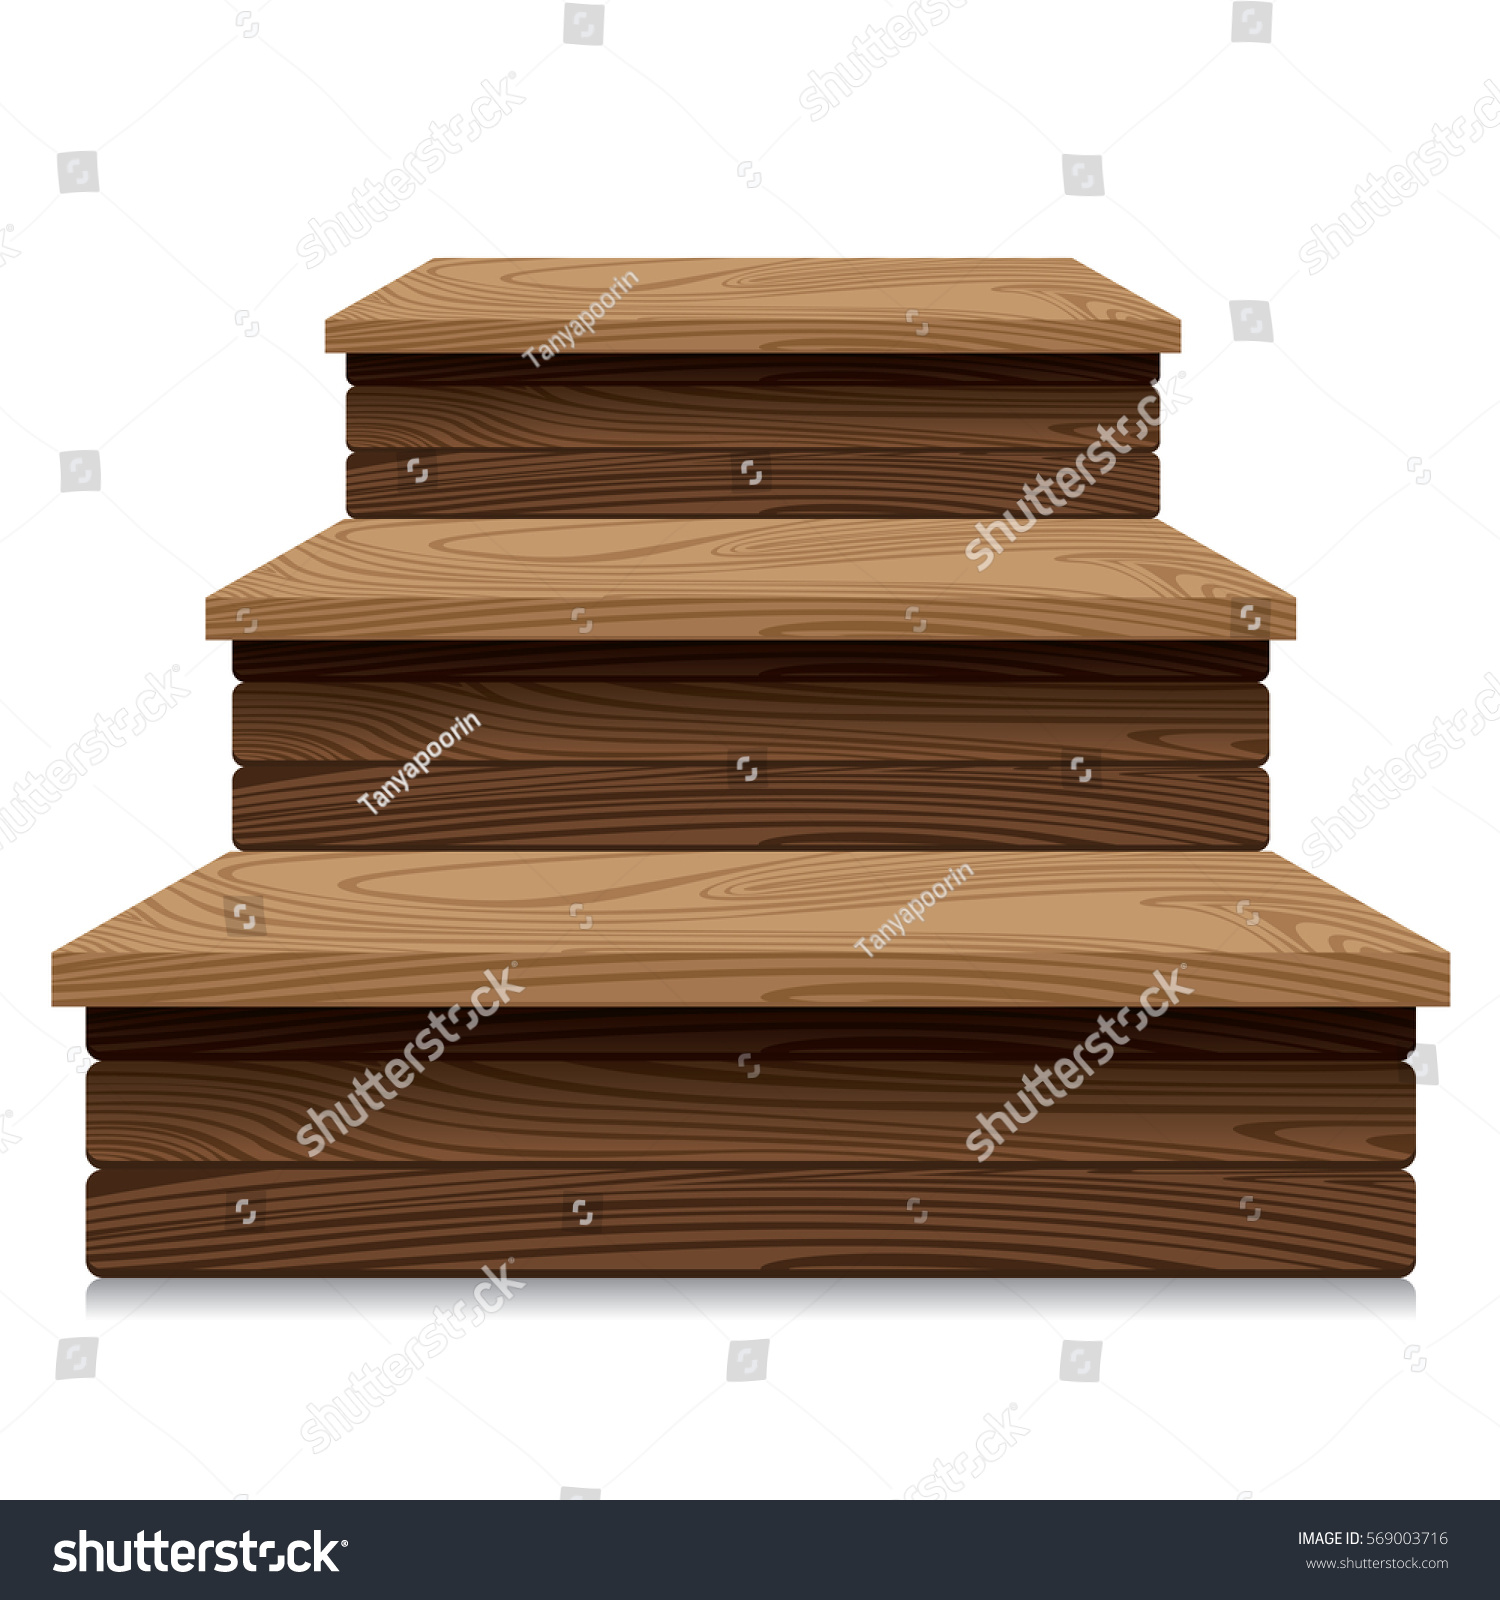 Wooden market stall on white background  Retail Trade Stand. Wooden Market Stall On White Background Stock Vector 569003716